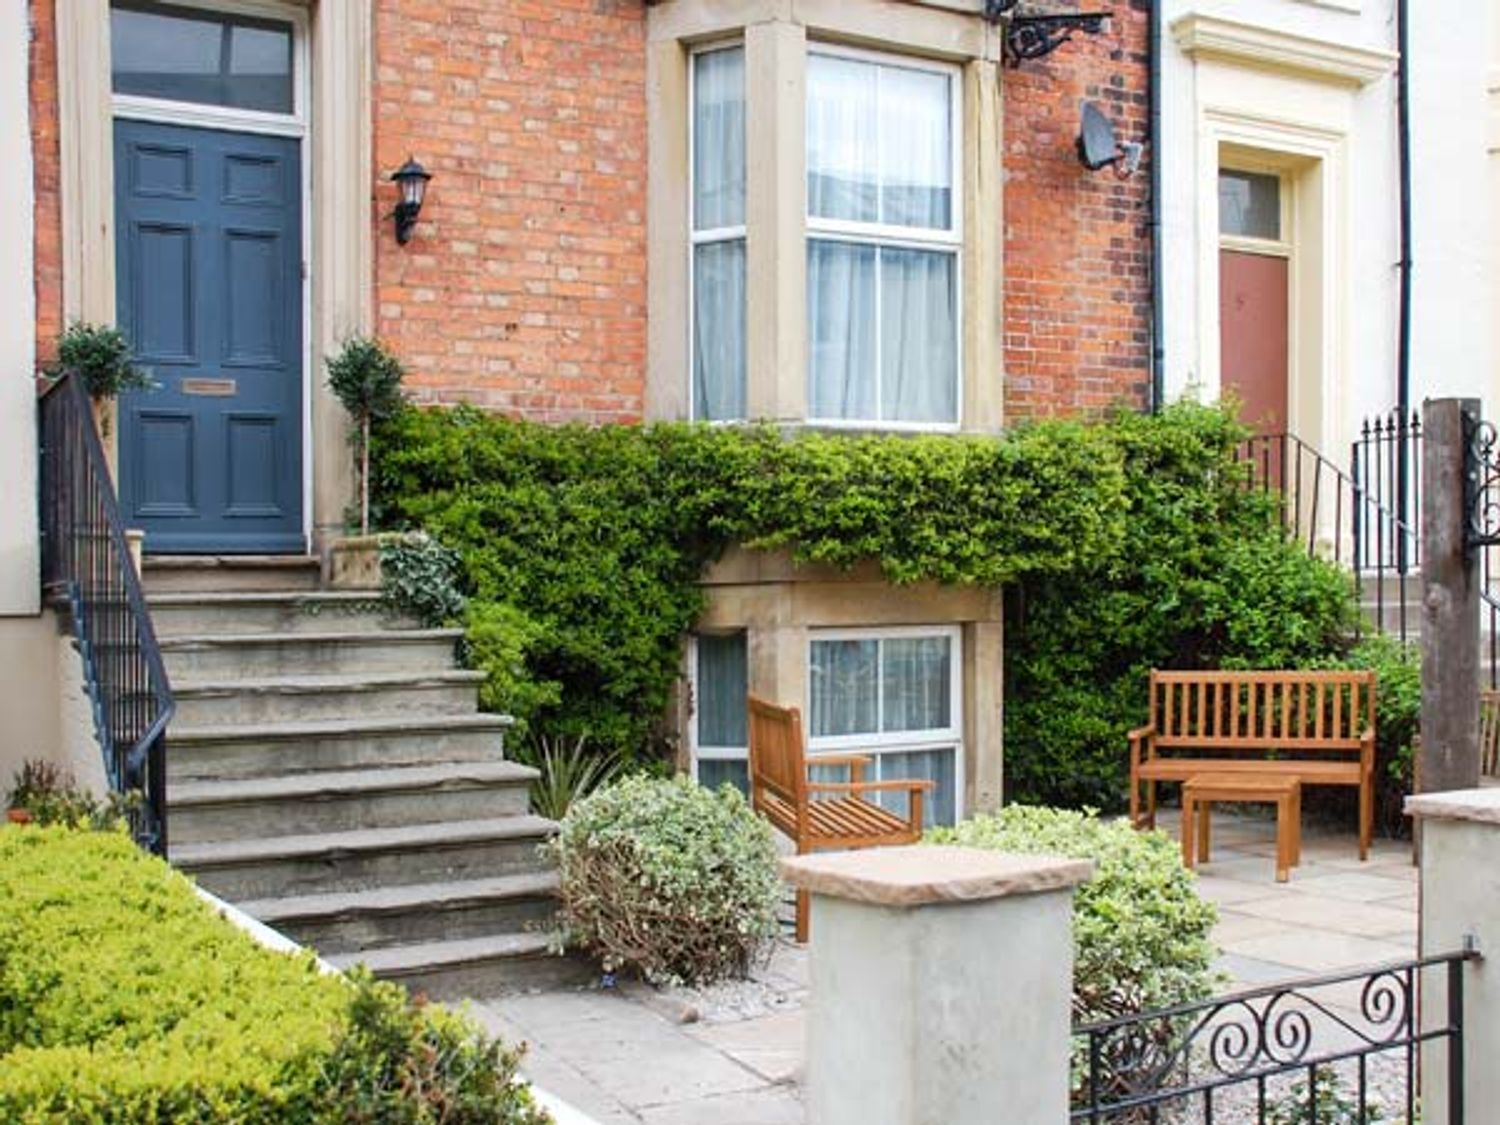 6 Abbey Terrace - Whitby & North Yorkshire - 4281 - photo 1